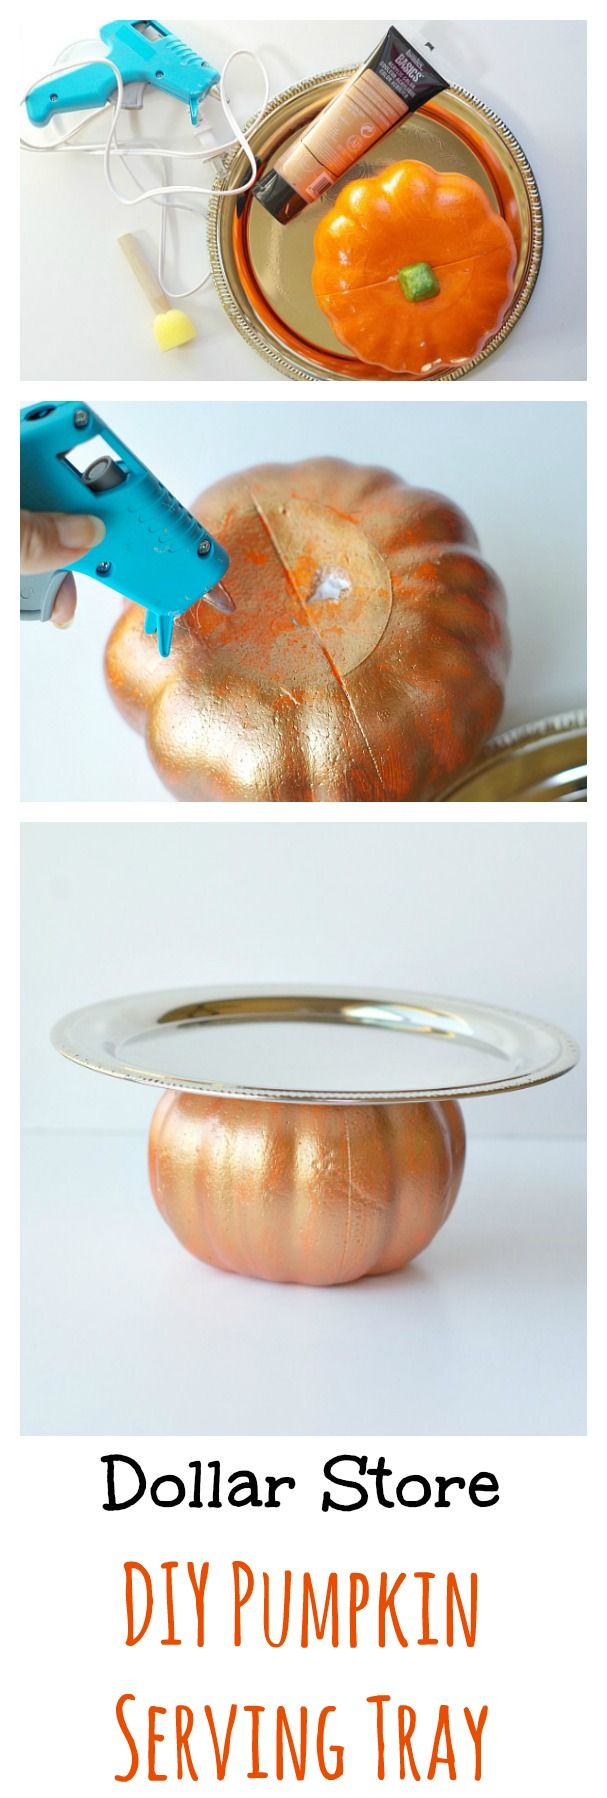 Dollar Store DIY Pumpkin Serving Tray. Perfect for Thanksgiving and fall parties.